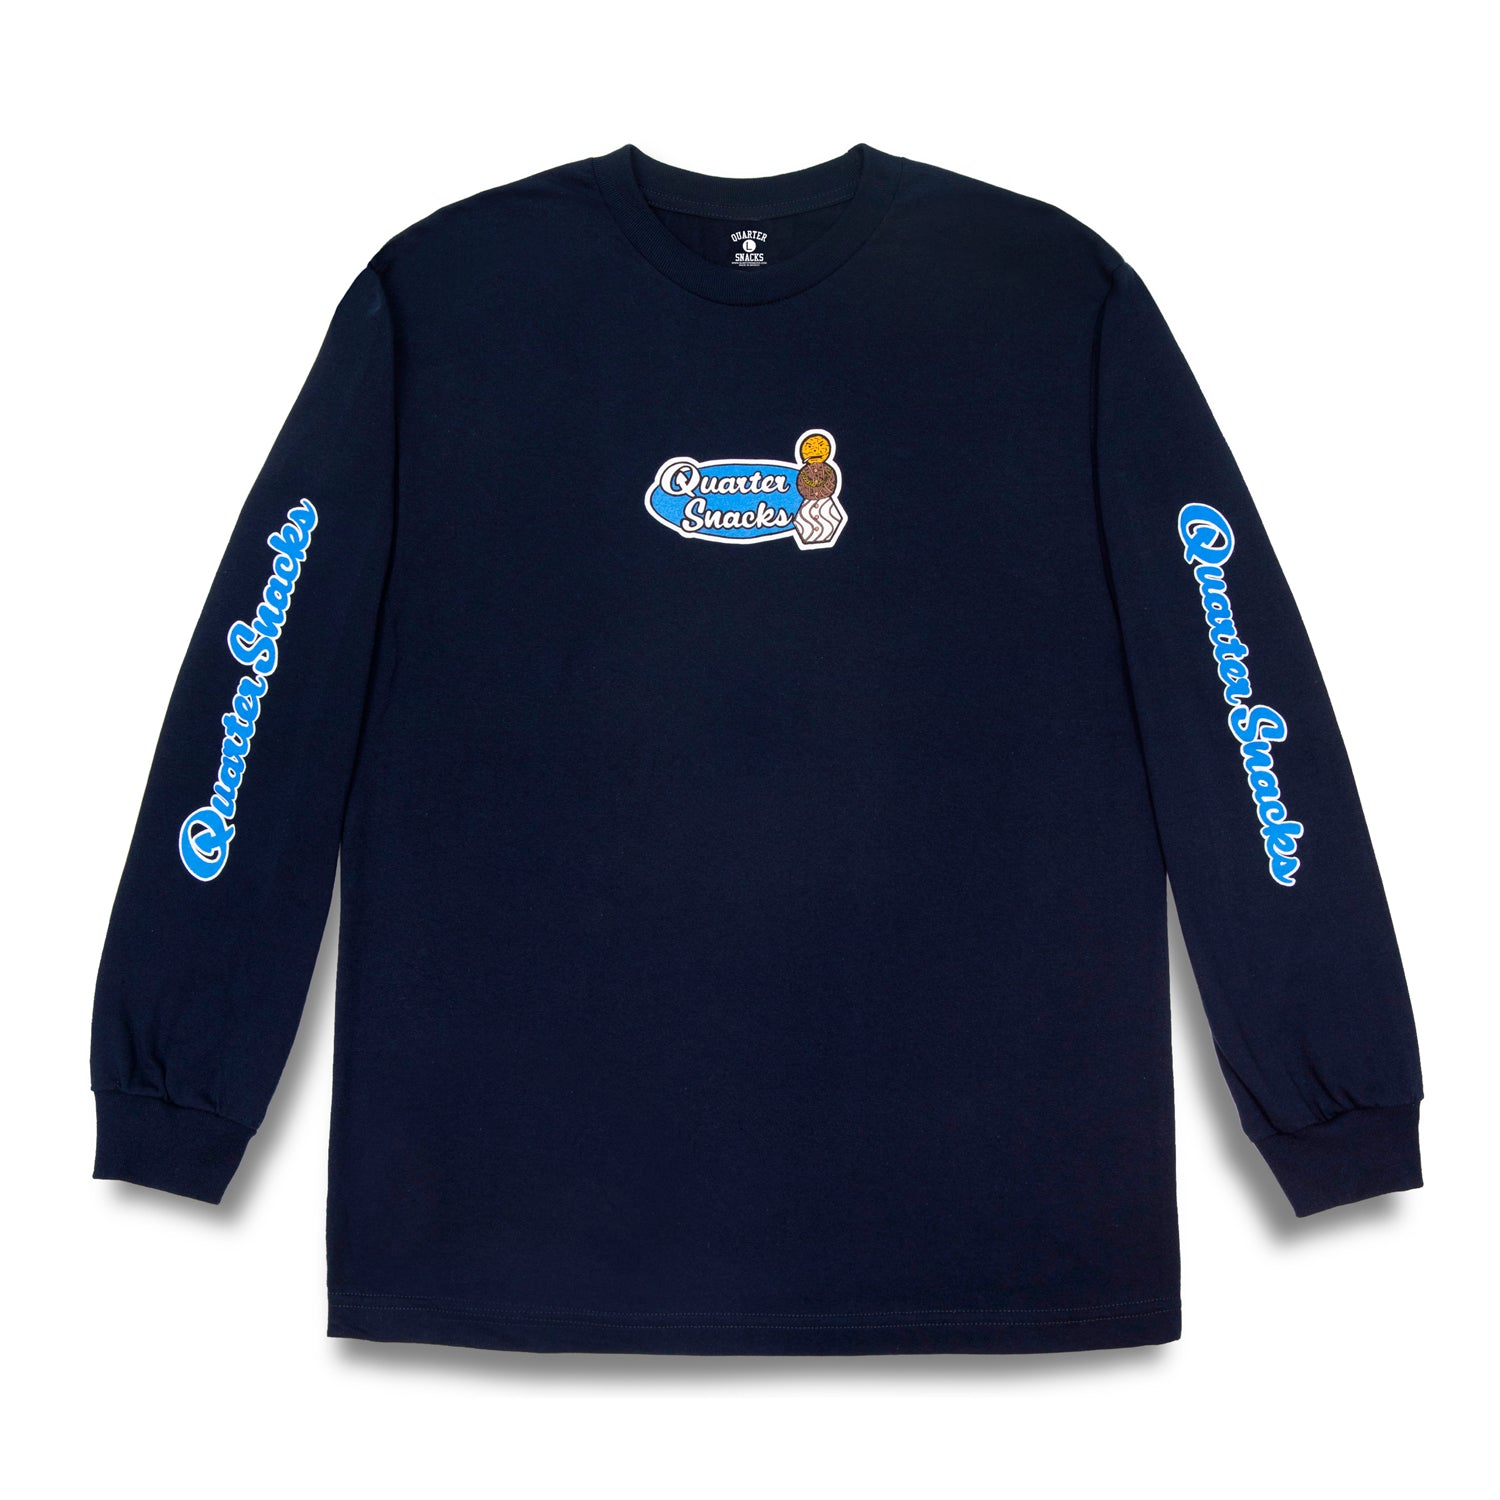 Quartersnacks Middle School L/S Tee Navy